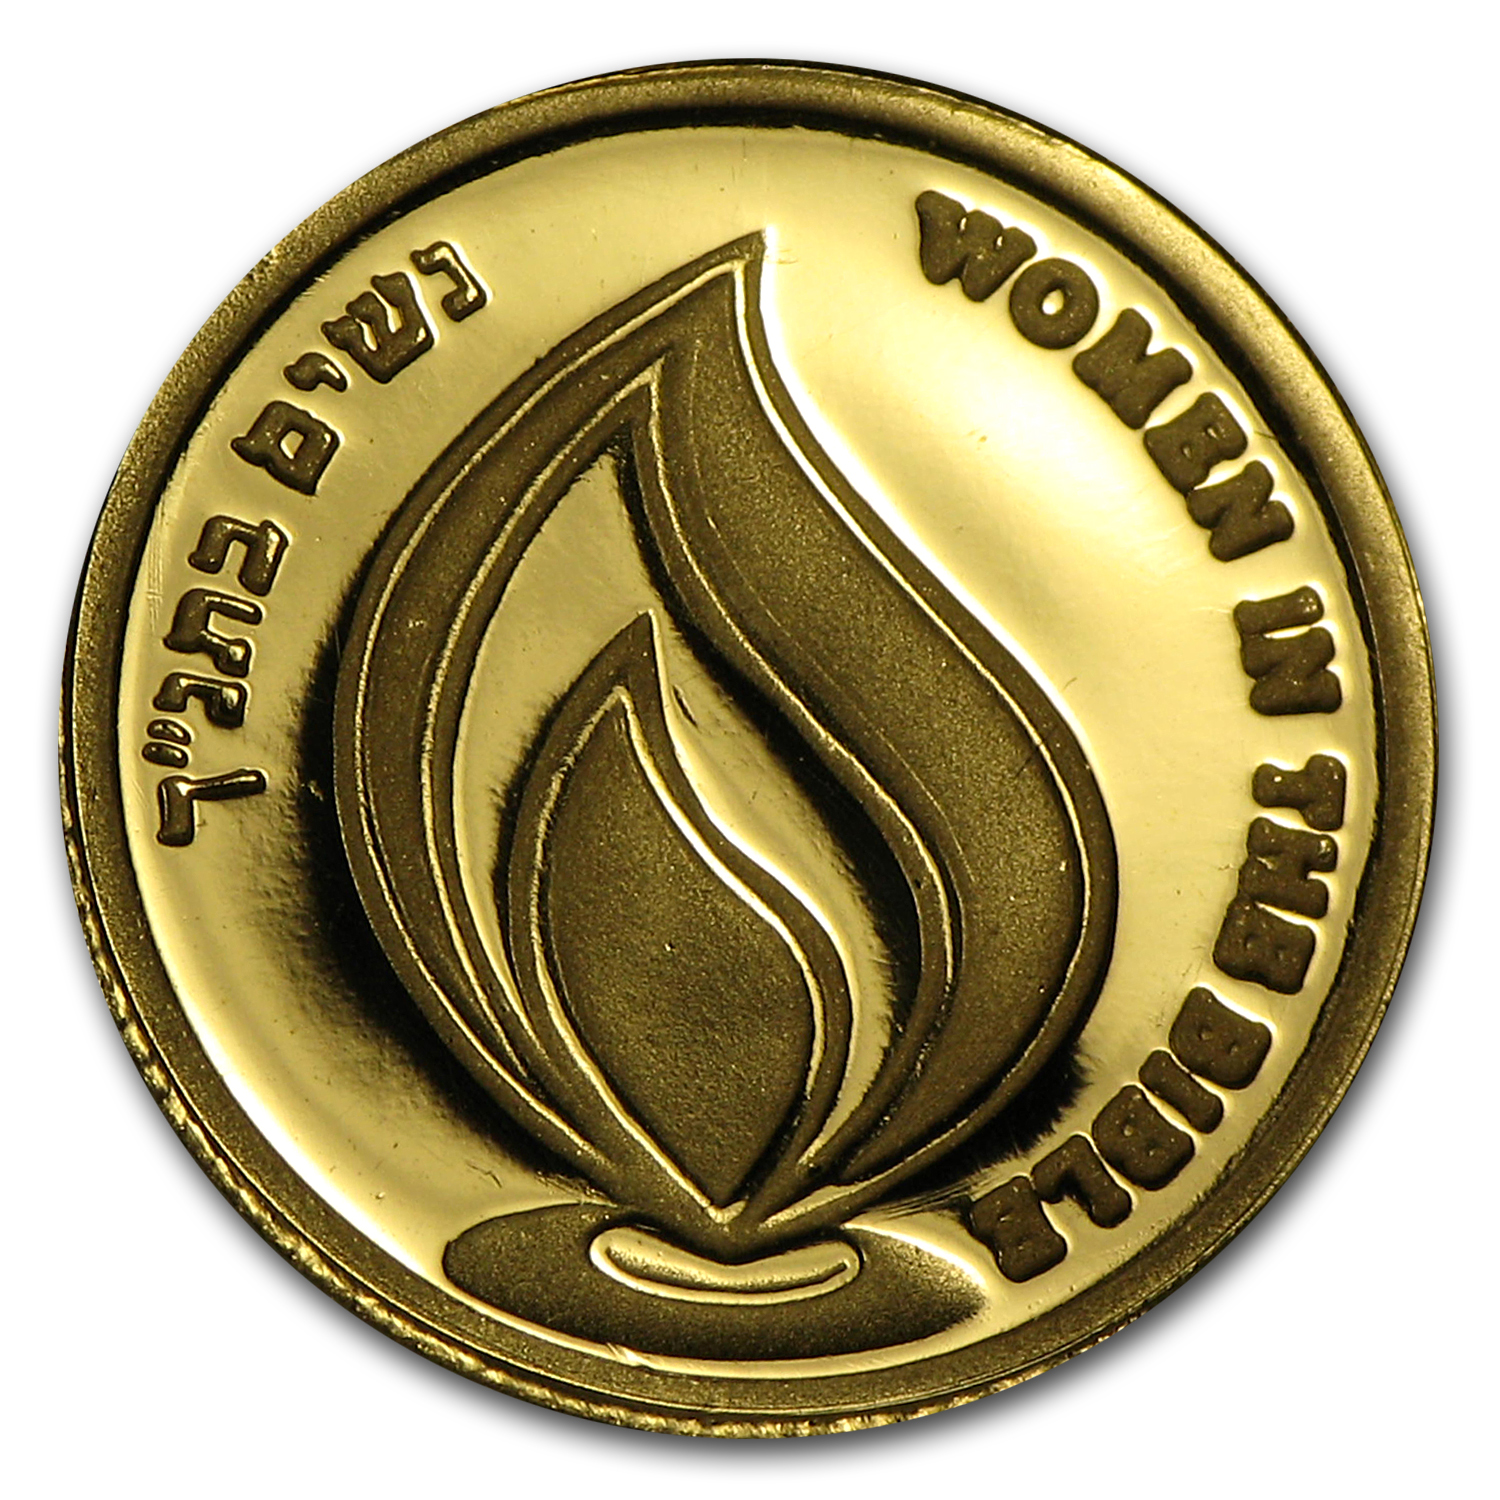 2011 Israel Deborah-Smallest Pure Gold Medal AGW 1/25 oz